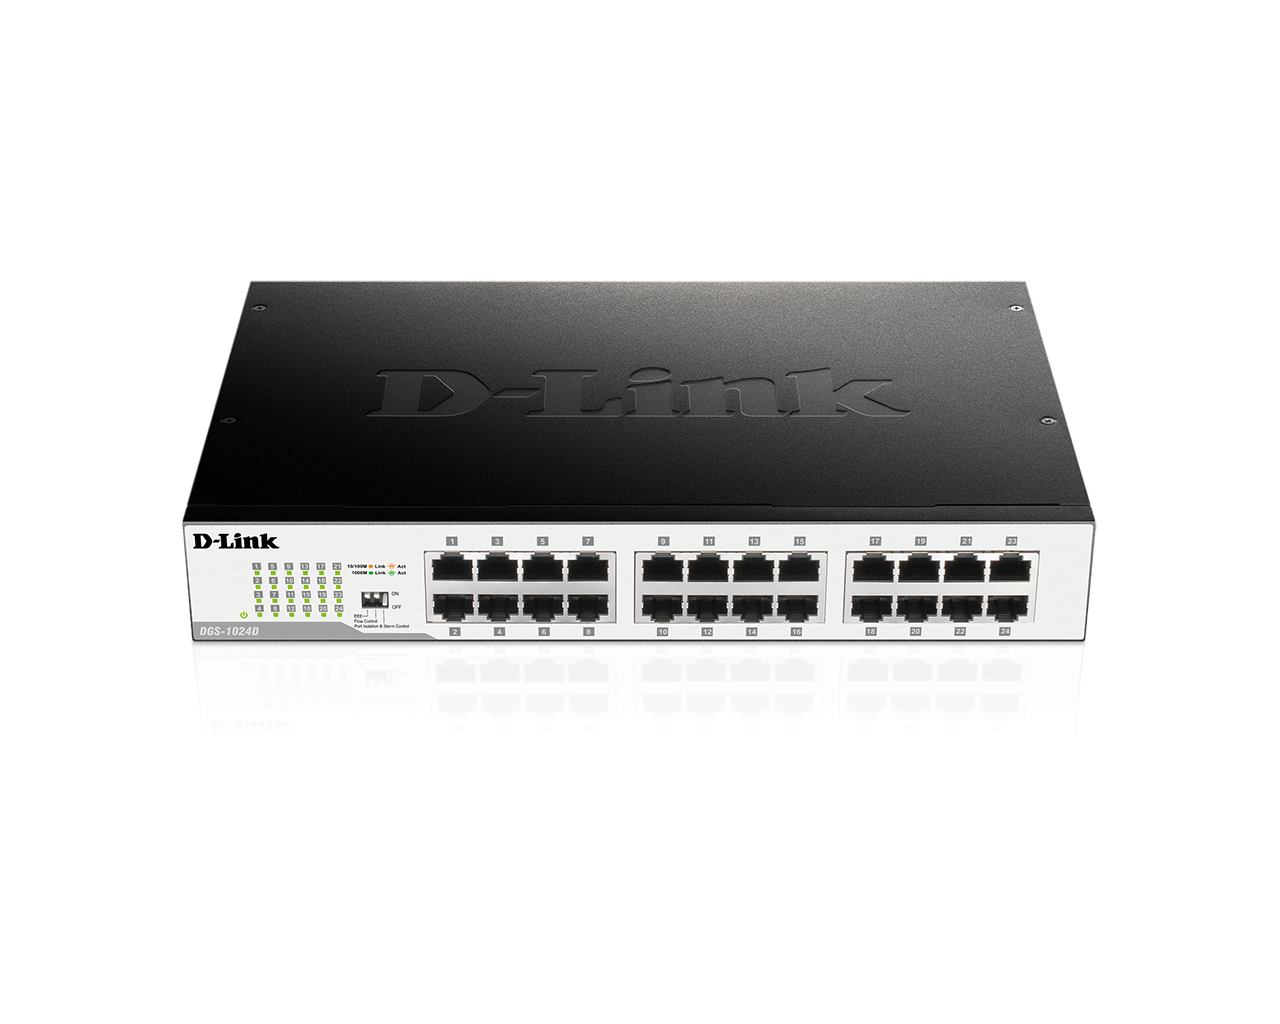 DGS-1024D 24-Port Gigabit Unmanaged Desktop/Rackmount Switch